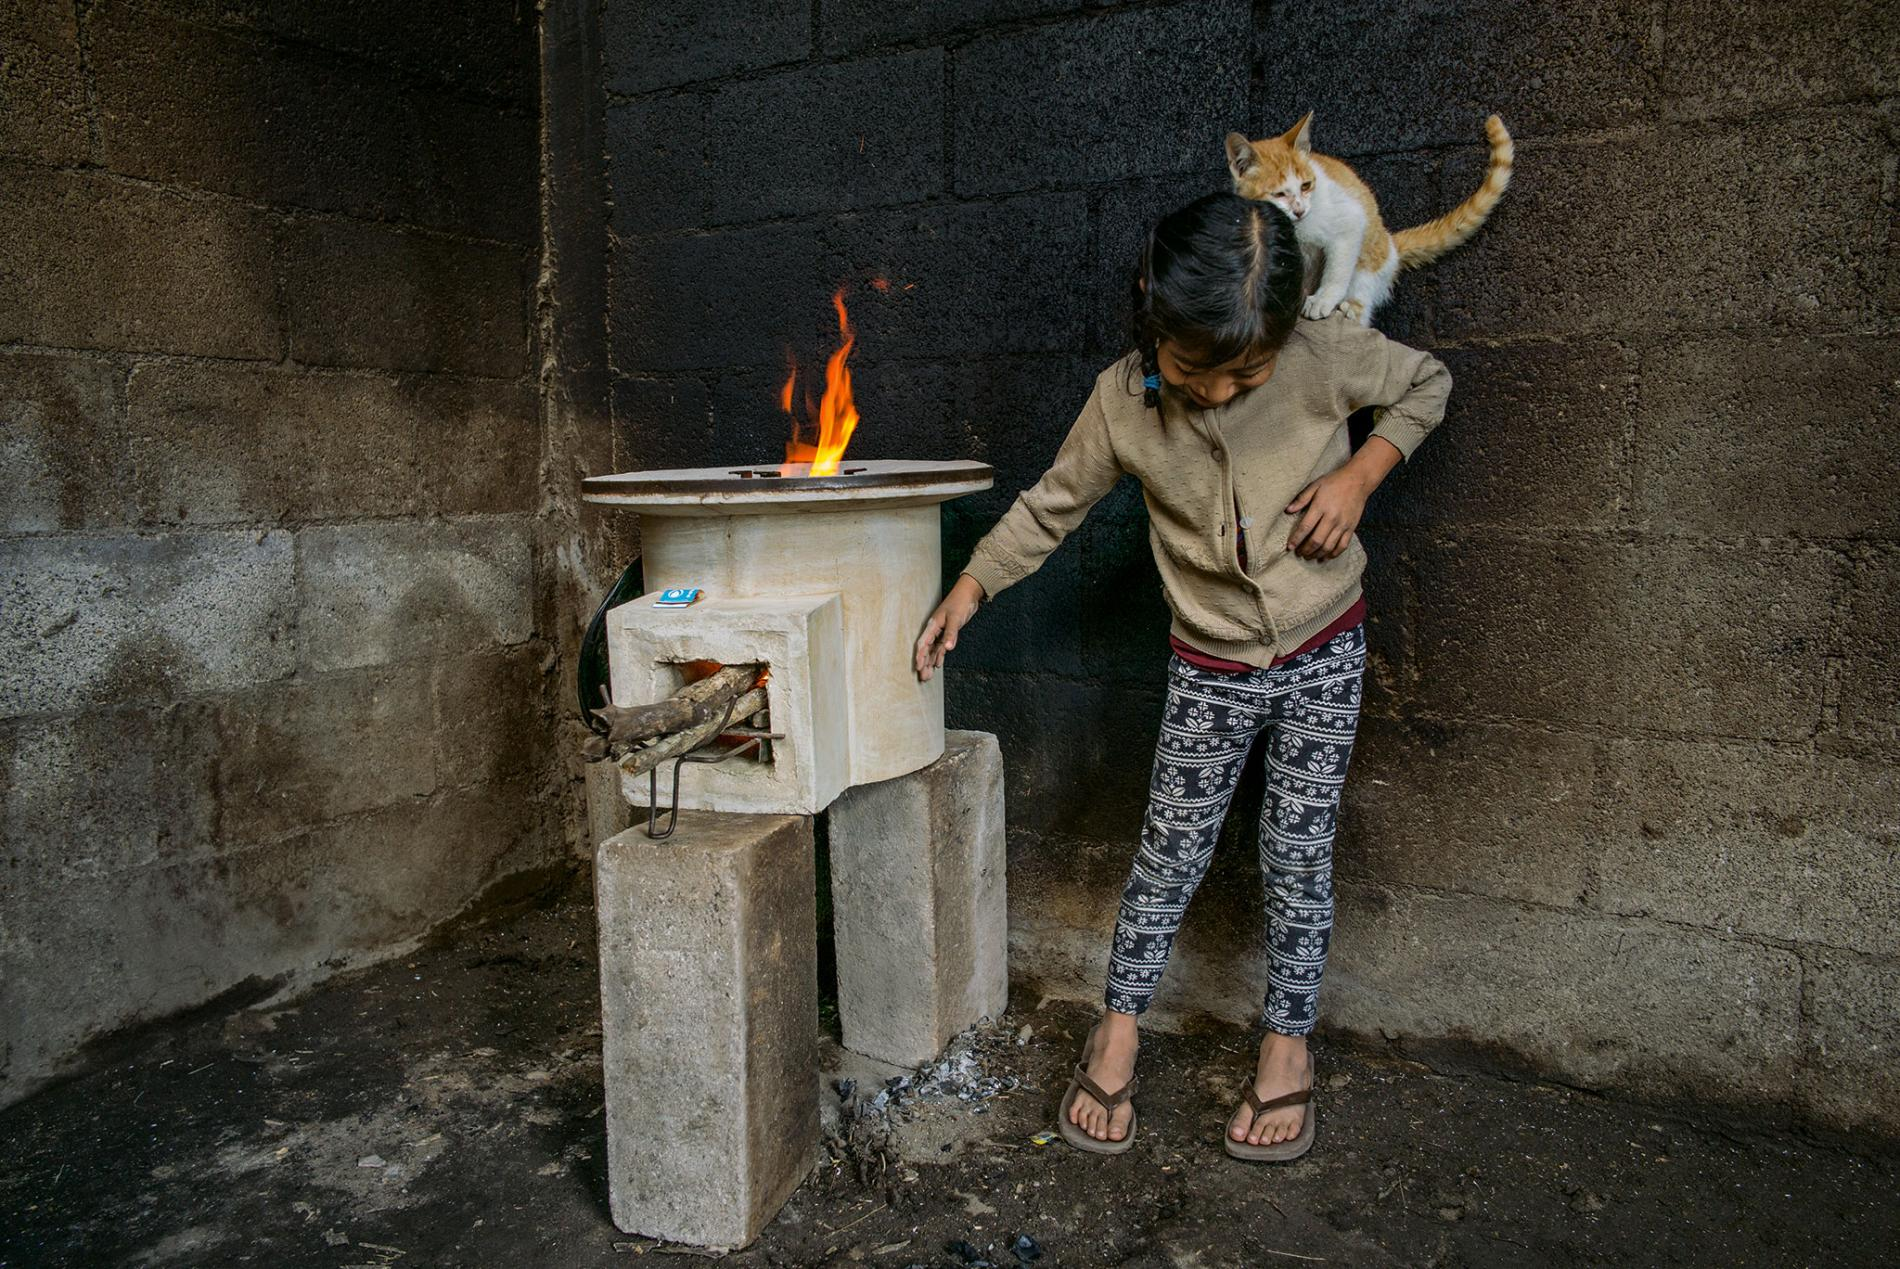 57 Pictures of the year - Natgeo - Tinhte.vn 23.jpg